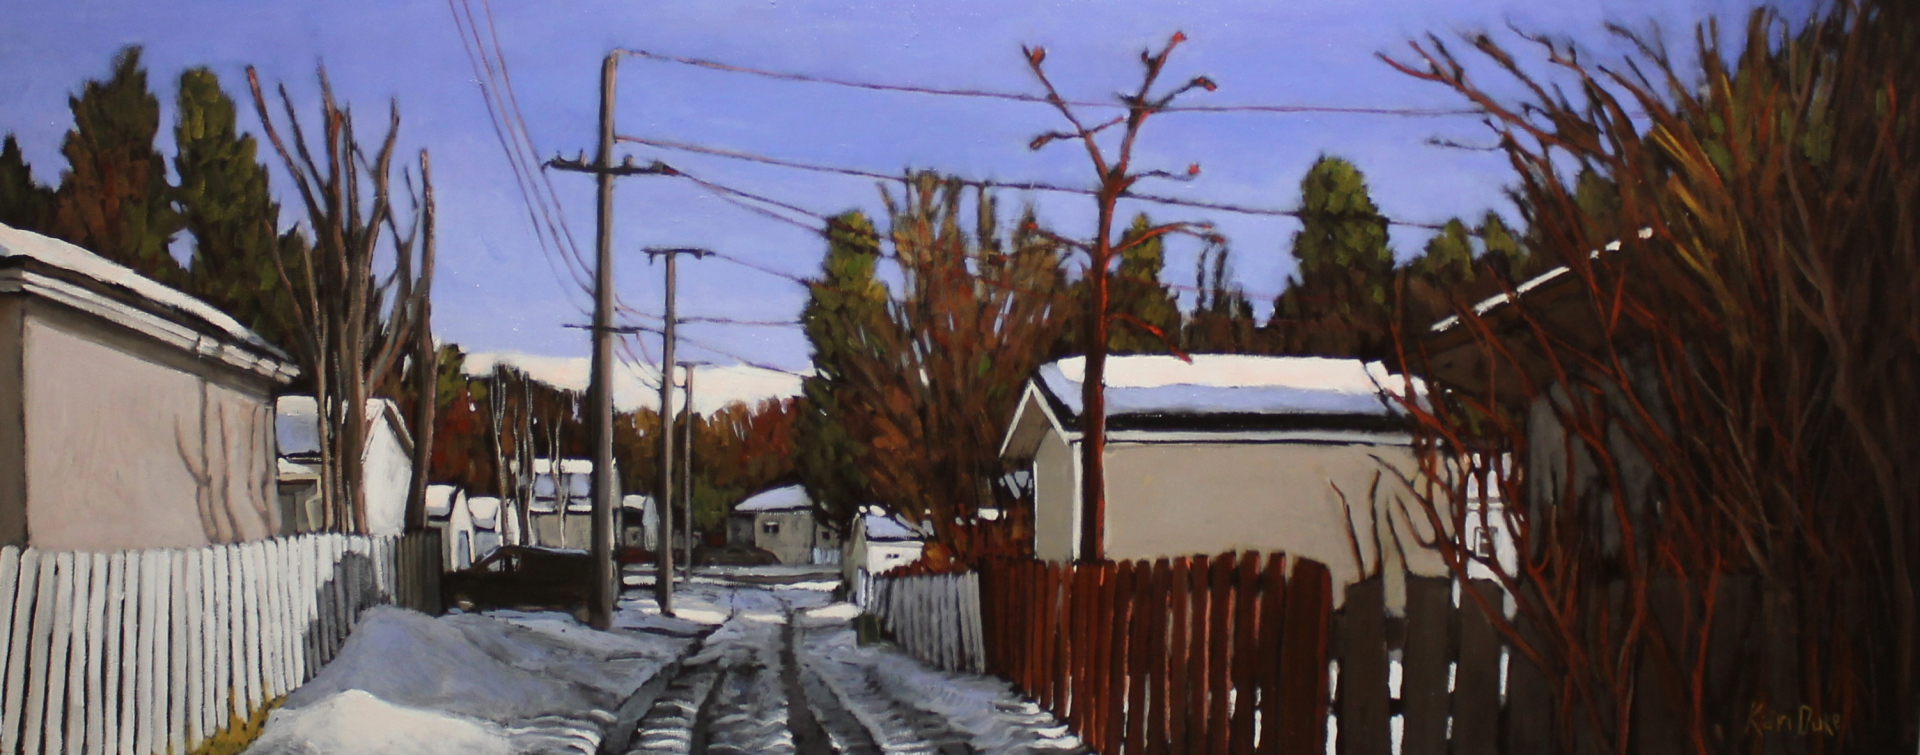 MORE SNOW COMING OUR WAY - 24X60 - OIL ON CANVAS - 2015